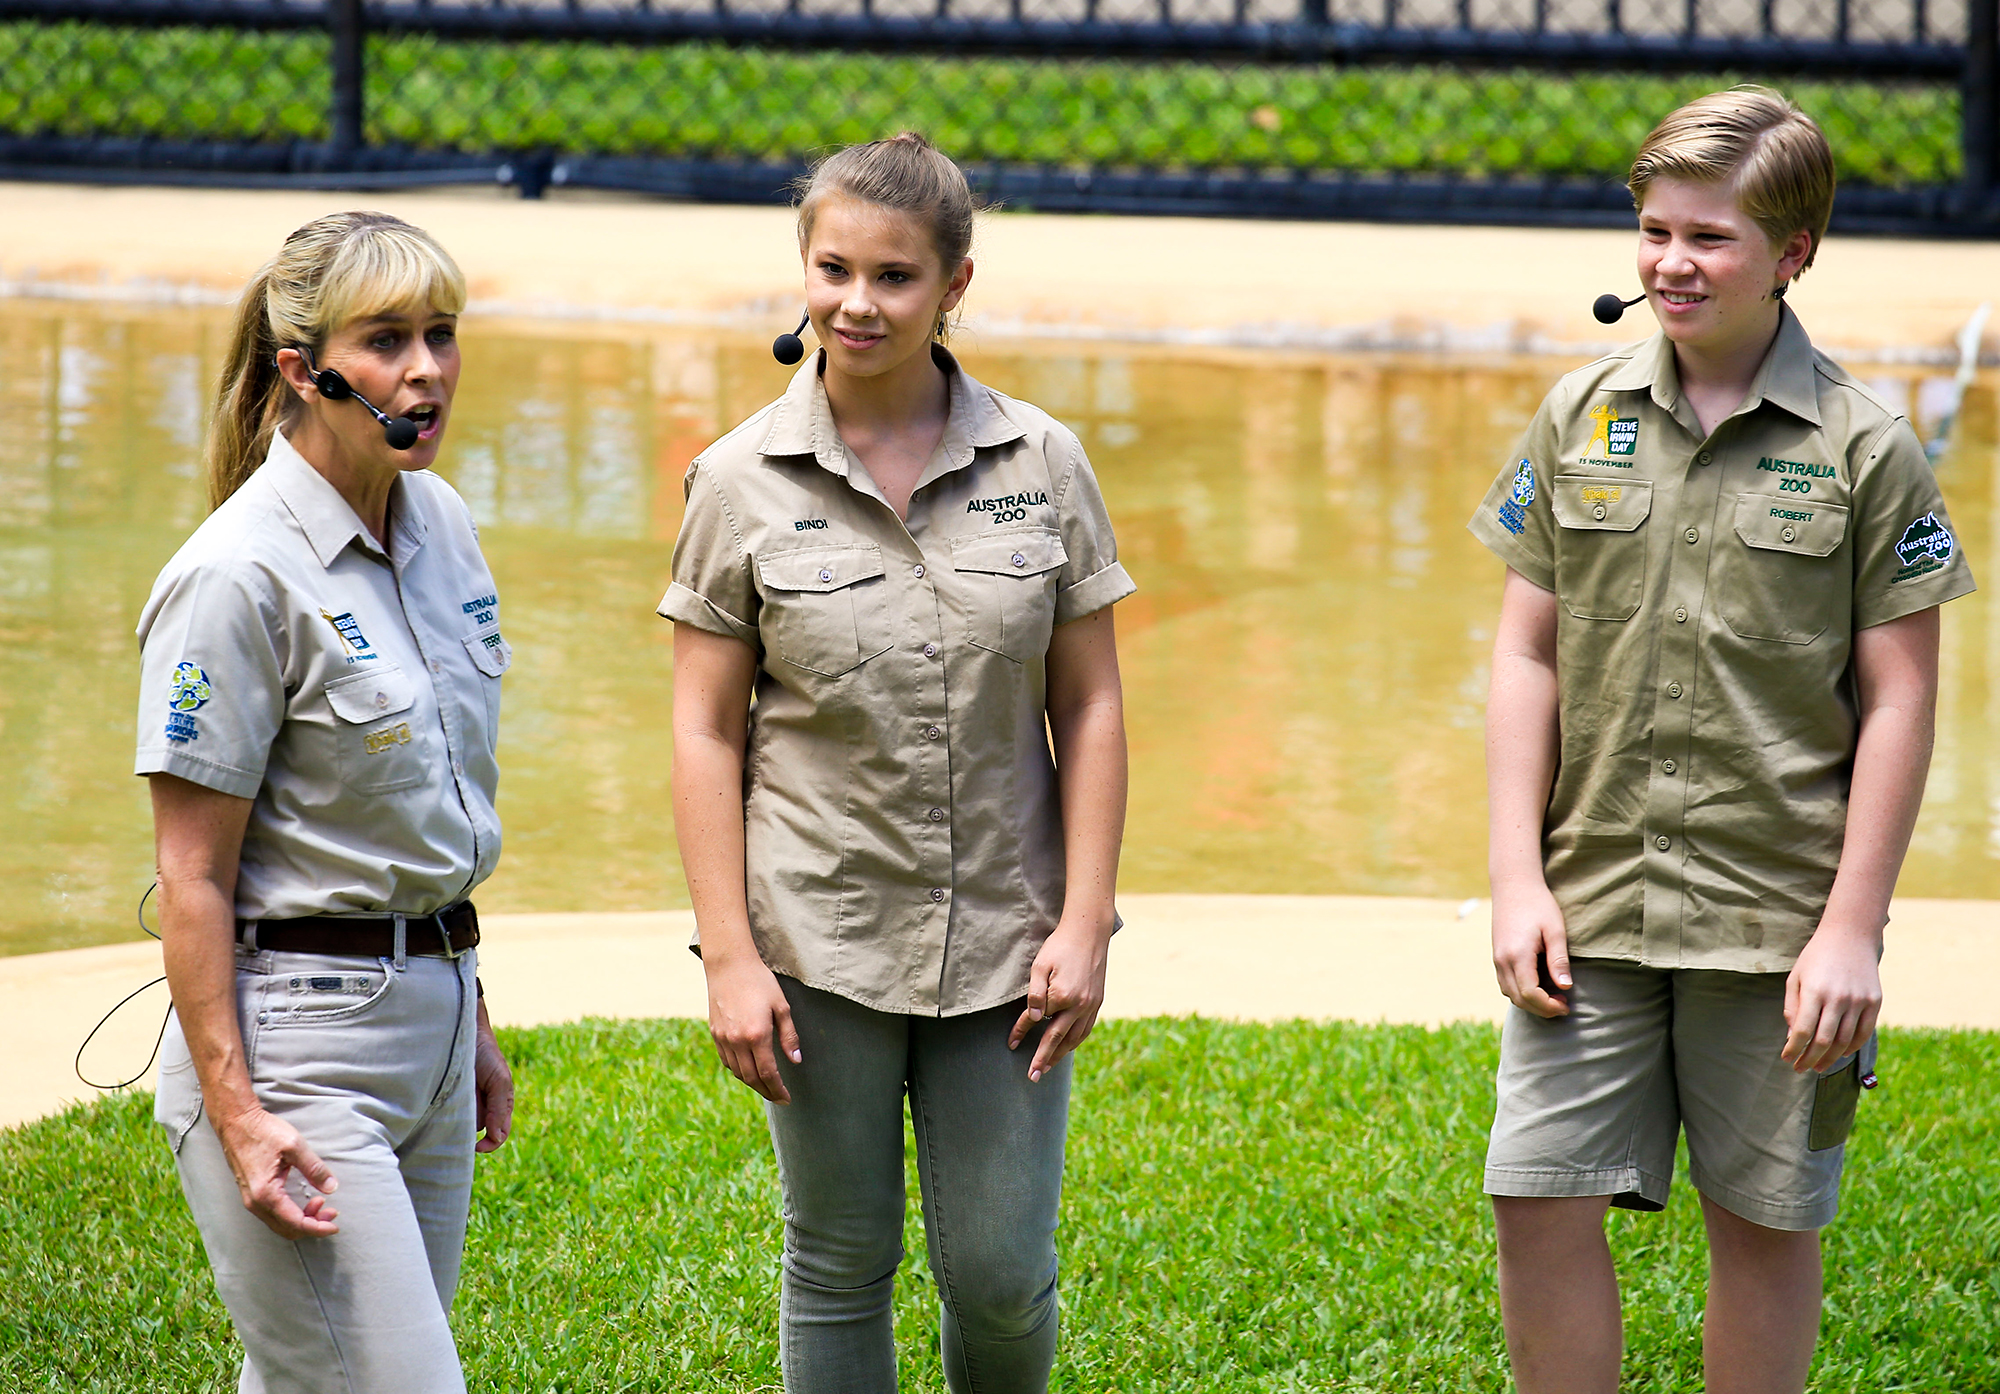 Bindi and Robert Irwin celebrate in their father's memory on Steve Irwin Day at their home, Australia Zoo on November 15, 2016 in Queensland, Australia. Terri Irwin led the family in a crocodile show, with both Bindi and Robert getting hands on with crocs. Bindi's boyfriend Chandler Powell was on the sidelines helping out too. Pictured: Bindi Irwin, Robert Irwin, Terri Irwin Ref: SPL1384483 151116 Picture by: Splash News Splash News and Pictures Los Angeles: 310-821-2666 New York: 212-619-2666 London: 870-934-2666 photodesk@splashnews.com